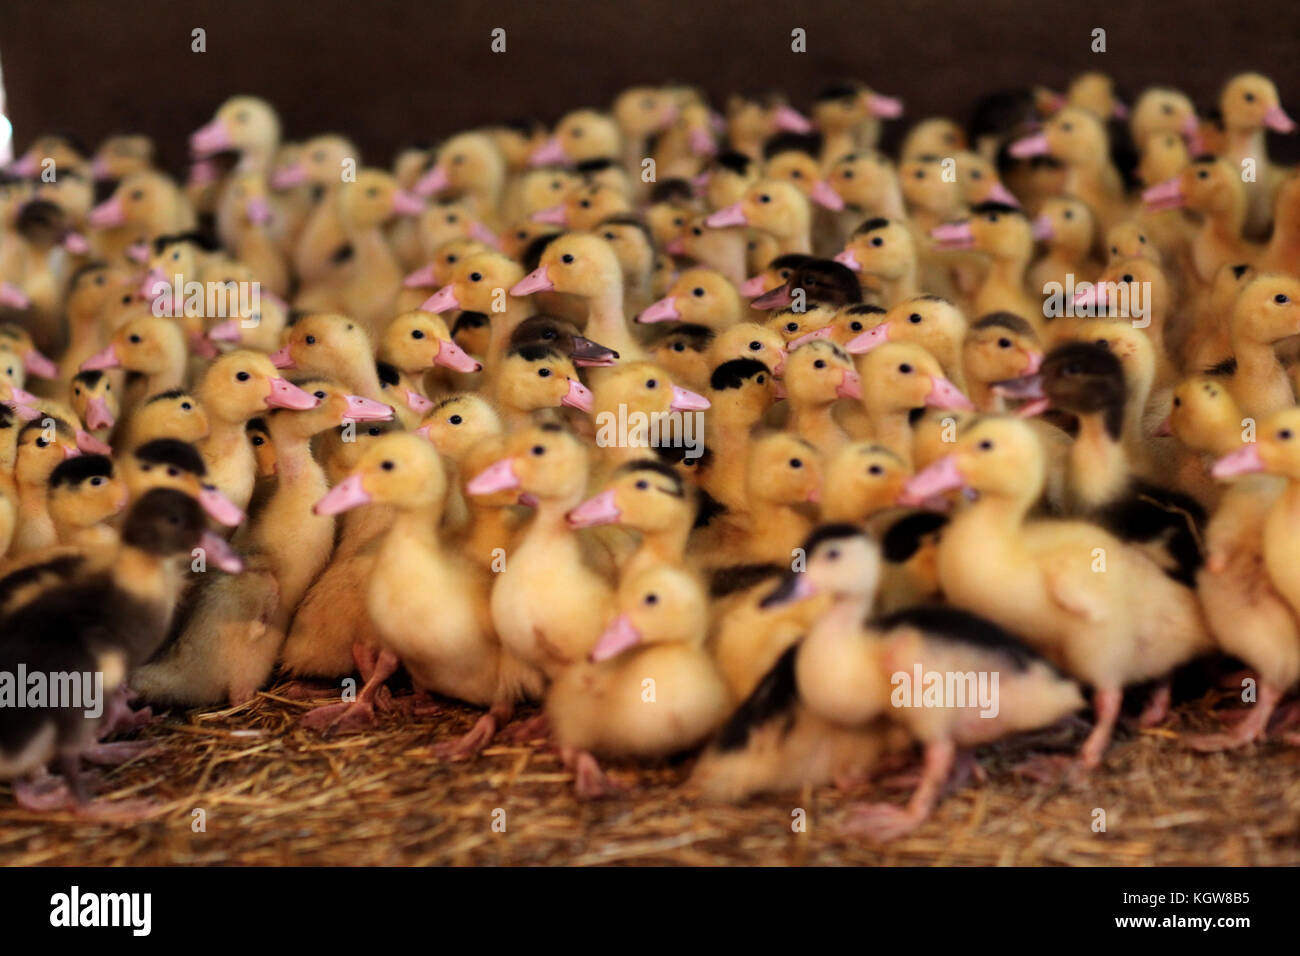 Closeup of baby ducks in farm - Stock Image